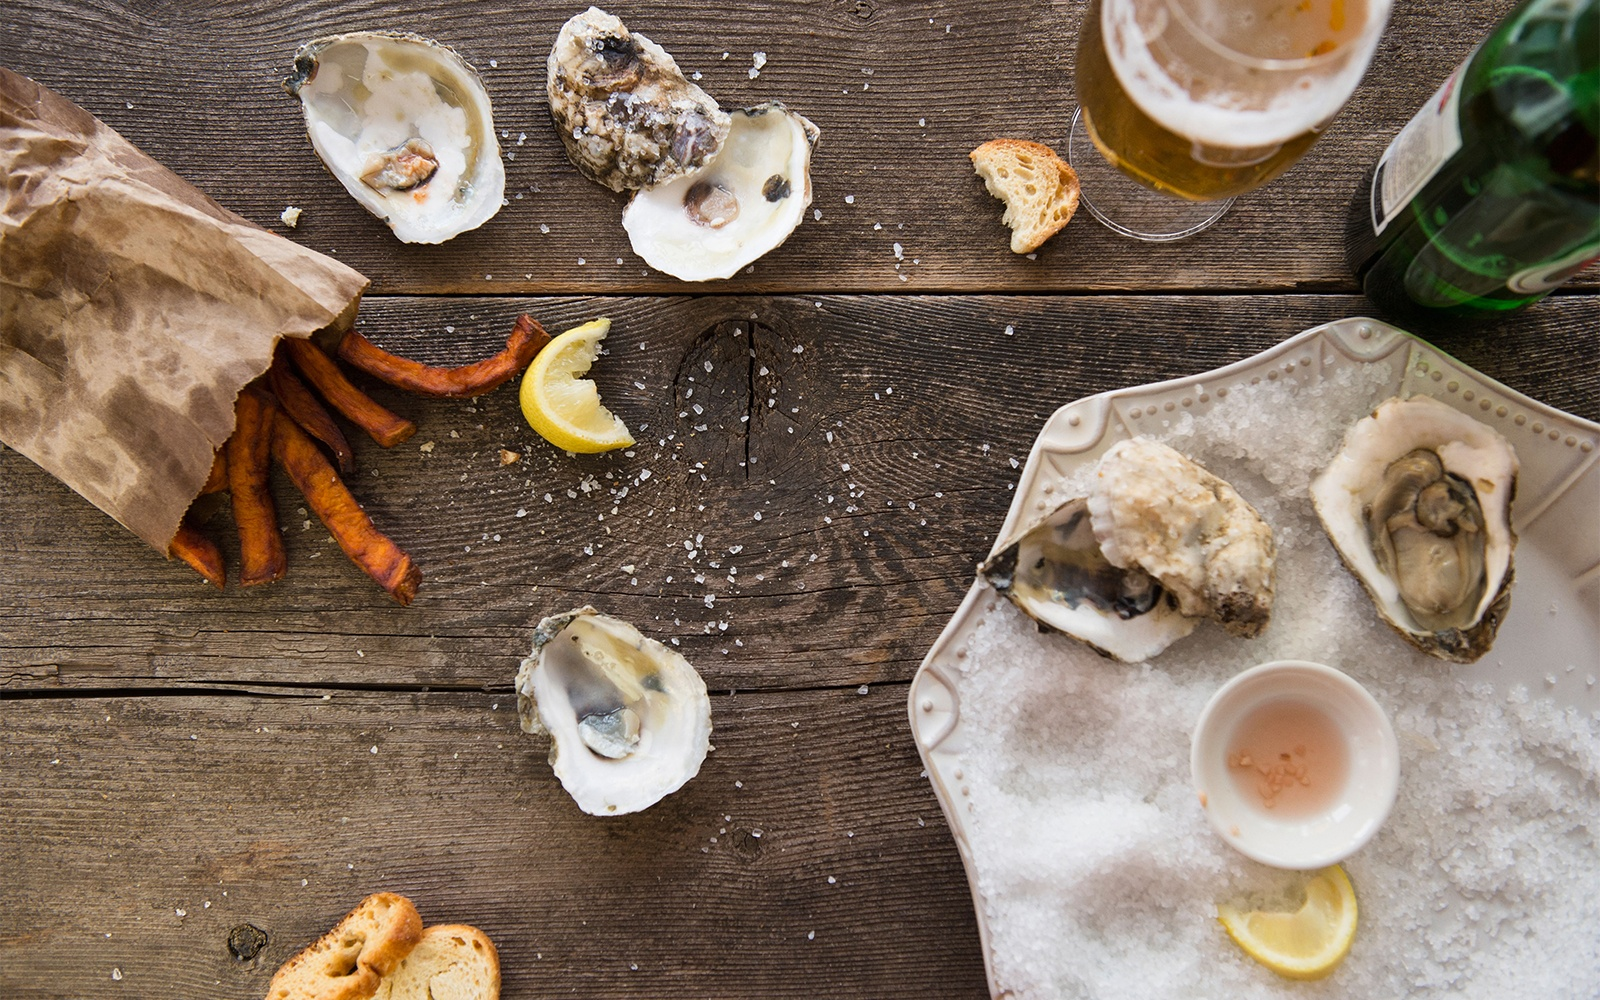 OYSTERS0715-pearl-oyster-app.jpg